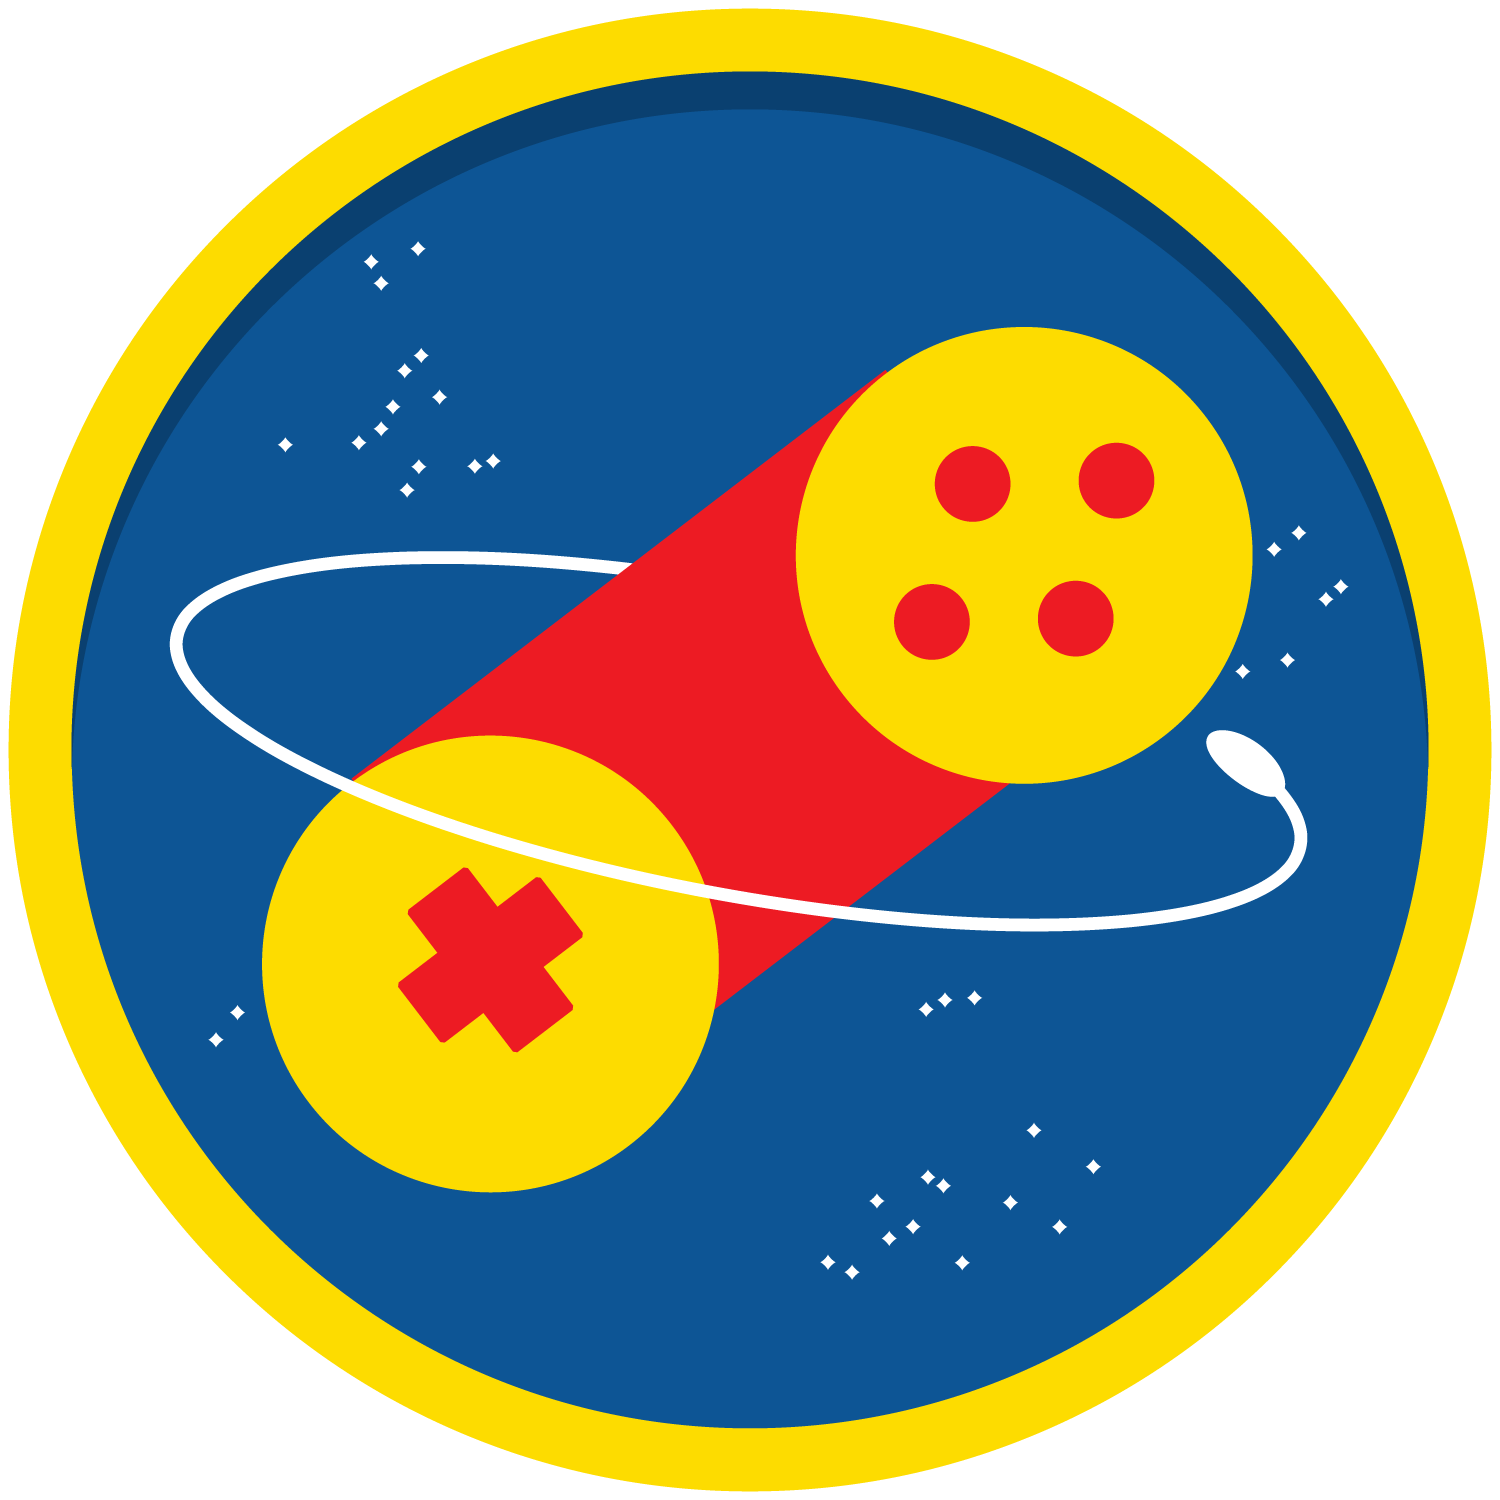 Planets clipart space jam. Indie galactic itch io